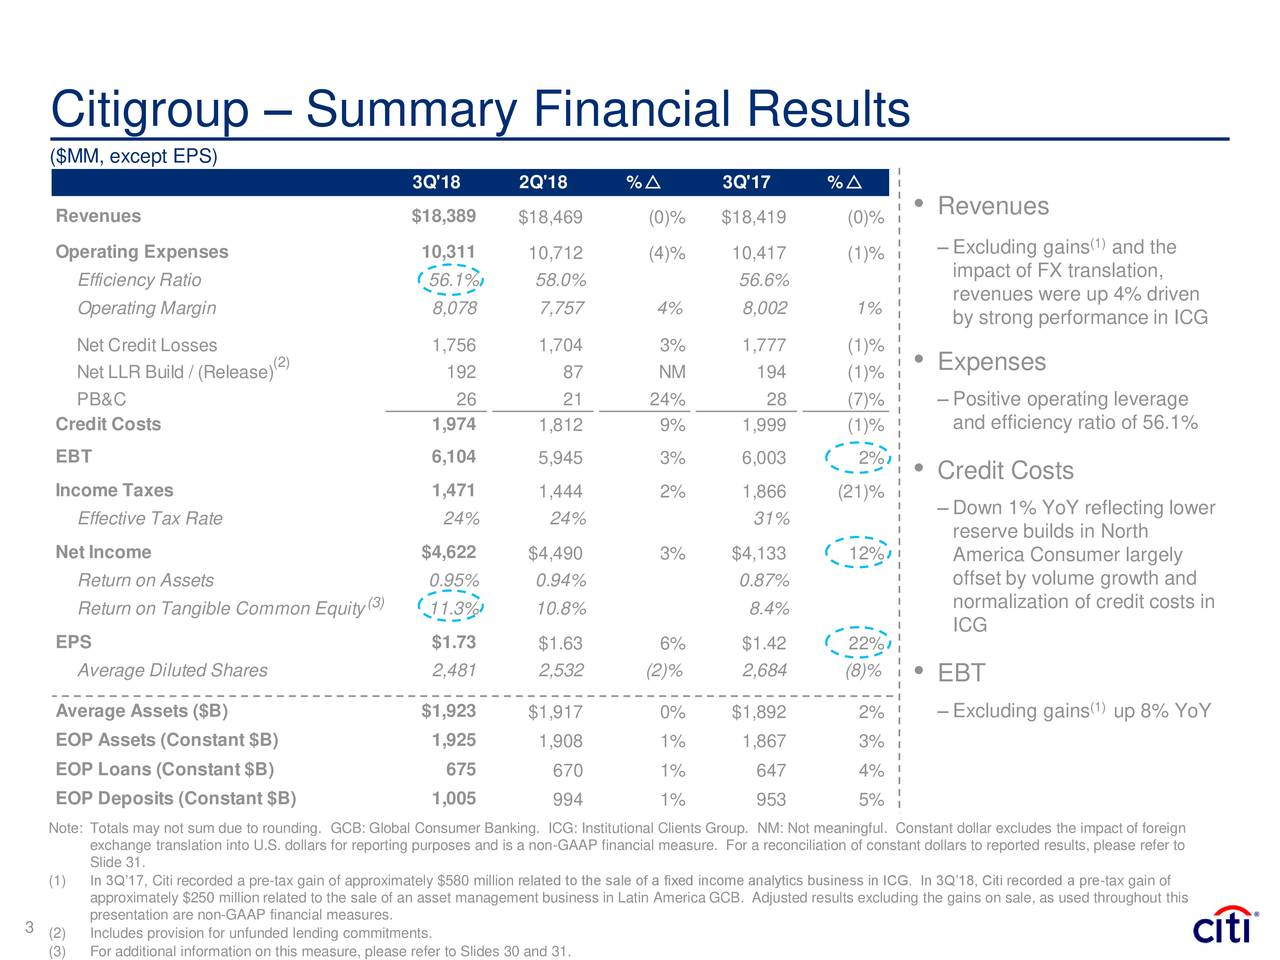 ($MM, except EPS) 3Q'18 2Q'18 %r 3Q'17 %r Revenues $18,389 $18,469 (0)% $18,419 (0)% • Revenues (1) Operating Expenses 10,311 10,712 (4)% 10,417 (1)% – Excluding gains and the Efficiency Ratio 56.1% 58.0% 56.6% impact of FX translation, revenues were up 4% driven Operating Margin 8,078 7,757 4% 8,002 1% by strong performance in ICG Net Credit Losses 1,756 1,704 3% 1,777 (1)% Net LLR Build / (Release) 192 87 NM 194 (1)% • Expenses PB&C 26 21 24% 28 (7)% – Positive operating leverage Credit Costs 1,974 1,812 9% 1,999 (1)% and efficiency ratio of 56.1% EBT 6,104 5,945 3% 6,003 2% • Credit Costs Income Taxes 1,471 1,444 2% 1,866 (21)% Effective Tax Rate 24% 24% 31% – Down 1% YoY reflecting lower reserve builds in North Net Income $4,622 $4,490 3% $4,133 12% America Consumer largely Return on Assets 0.95% 0.94% 0.87% offset by volume growth and Return on Tangible Common Equity3) 11.3% 10.8% 8.4% normalization of credit costs in ICG EPS $1.73 $1.63 6% $1.42 22% Average Diluted Shares 2,481 2,532 (2)% 2,684 (8)% • EBT Average Assets ($B) $1,923 $1,917 0% $1,892 2% – Excluding gains(1up 8% YoY EOP Assets (Constant $B) 1,925 1,908 1% 1,867 3% EOP Loans (Constant $B) 675 670 1% 647 4% EOP Deposits (Constant $B) 1,005 994 1% 953 5% Note: Totals may not sum due to rounding. GCB: Global Consumer Banking. ICG: Institutional Clients Group. NM: Not meaningful. Constant dollar excludes the impact of foreign exchange translation into U.S. dollars for reporting purposes and is a non-GAAP financial measure. For a reconciliation of constant dollars to reported results, please refer to Slide 31. (1) In 3Q'17, Citi recorded a pre-tax gain of approximately $580 million related to the sale of a fixed income analytics business in ICG. In 3Q'18, Citi recorded a pre-tax gain of approximately $250 million related to the sale of an asset management business in Latin America GCB. Adjusted results excluding the gains on sale, as used throughout this presentation are non-GAAP financial measures. 3 